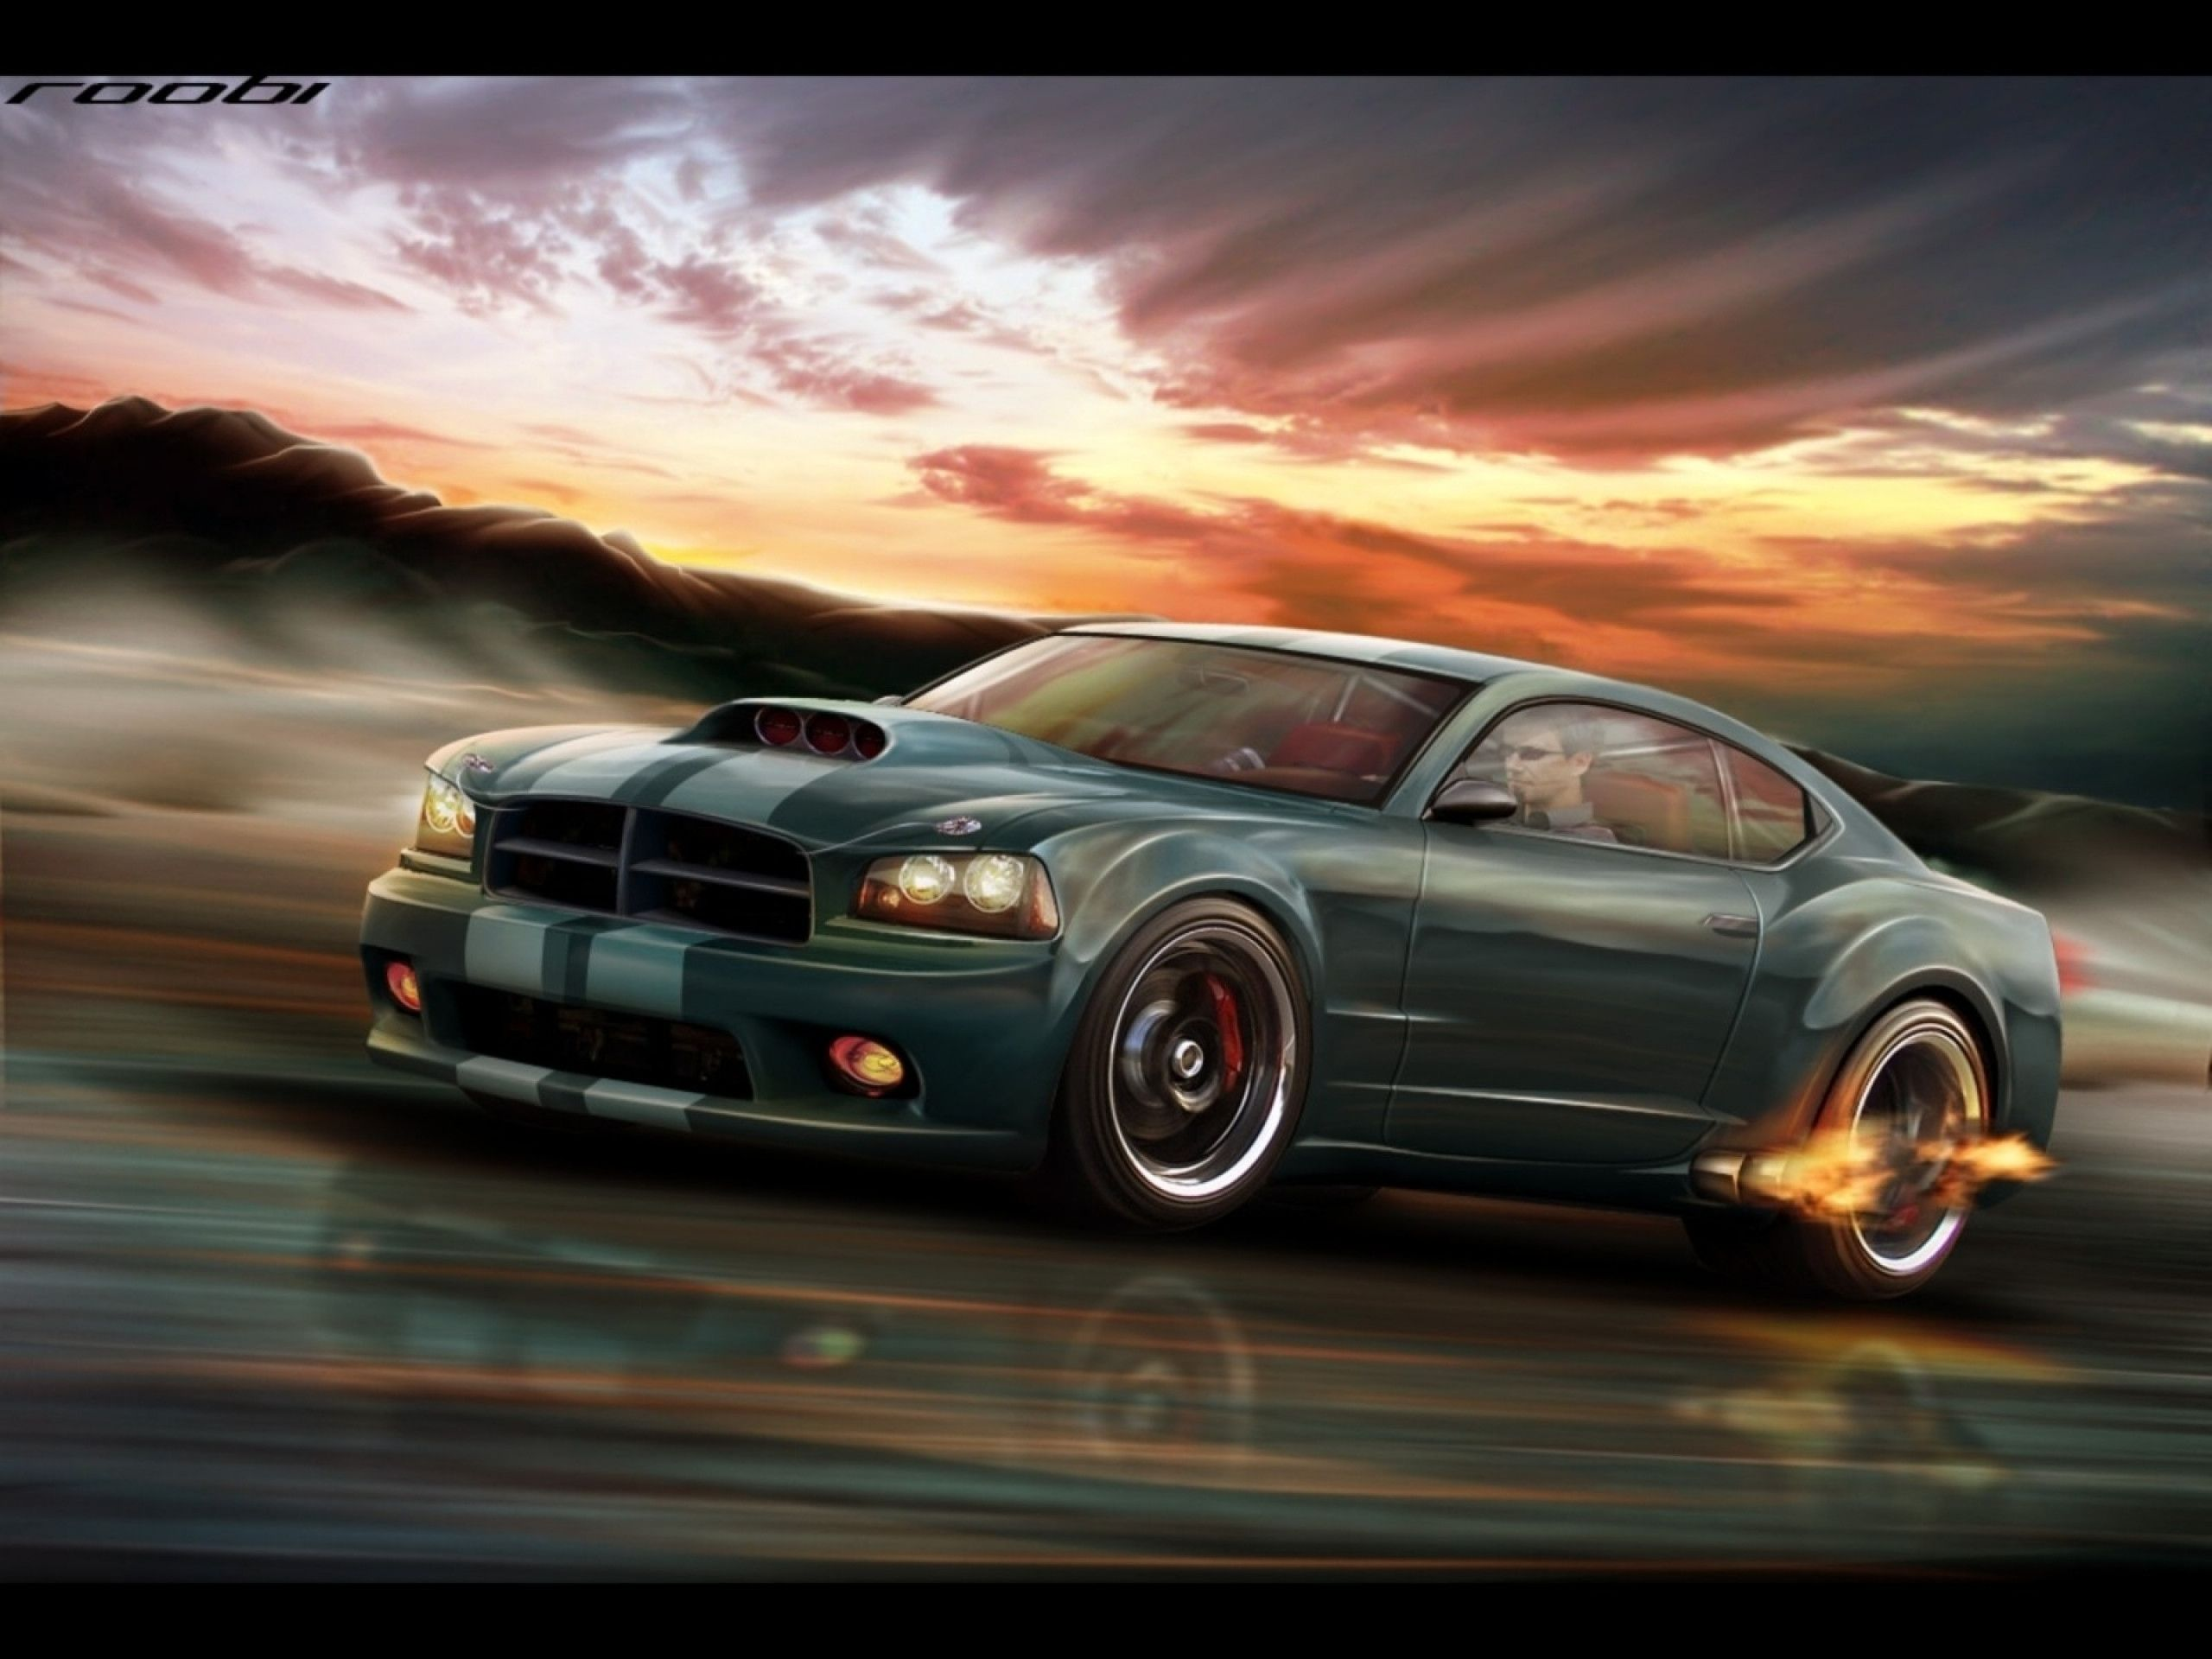 Cool Muscle Car Wallpapers Photo 3d Iphone Camaro Muscle 2560x1920